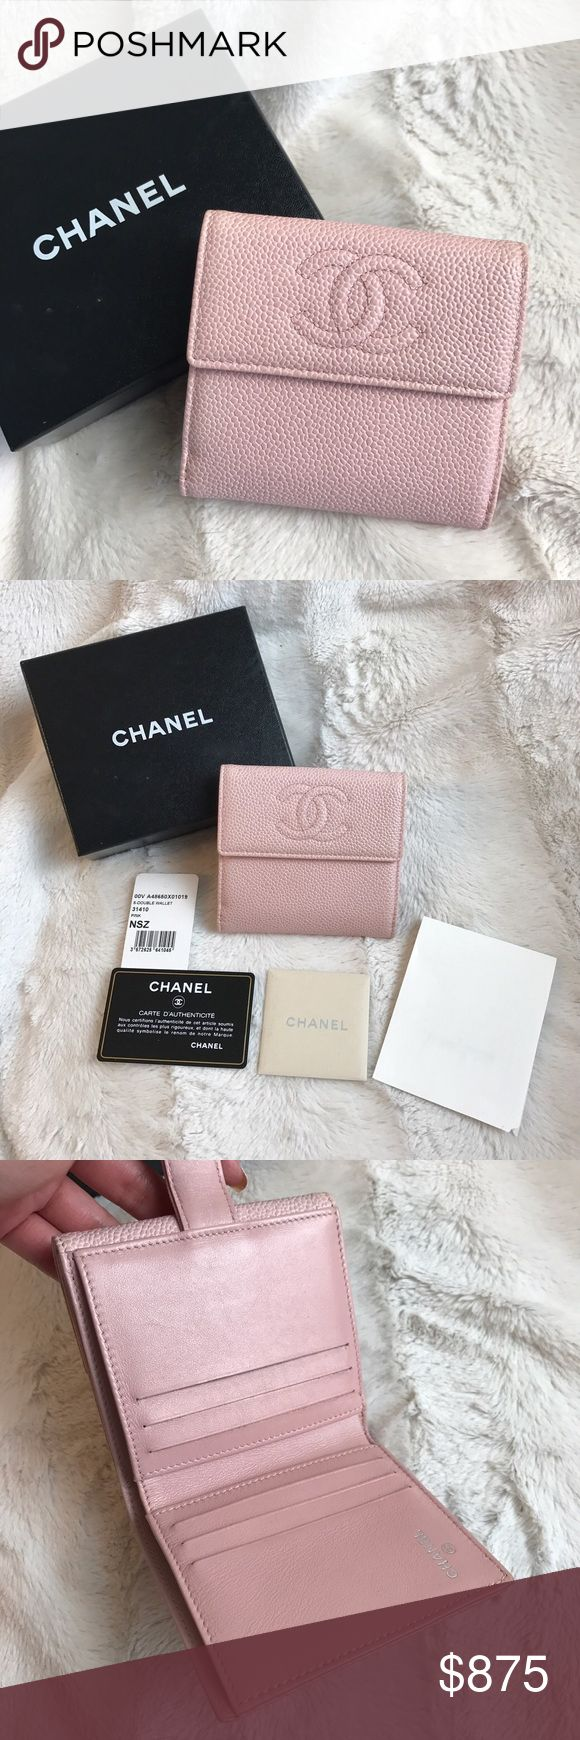 $700 OBO CHANEL BABY PINK CAVIAR FRENCH WALLET Just posted this for sale on my @luxesales IG so I thought I would here too! Please see that Instagram for more photos and details since I can't fit the whole listing and all the photos there. You'll get up close shots of any wear etc. Measurements there too!              ASKING $700 SHIPPED (US) OBO 📩luxesalesIG@ gmail.com to purchase CHANEL Bags Wallets